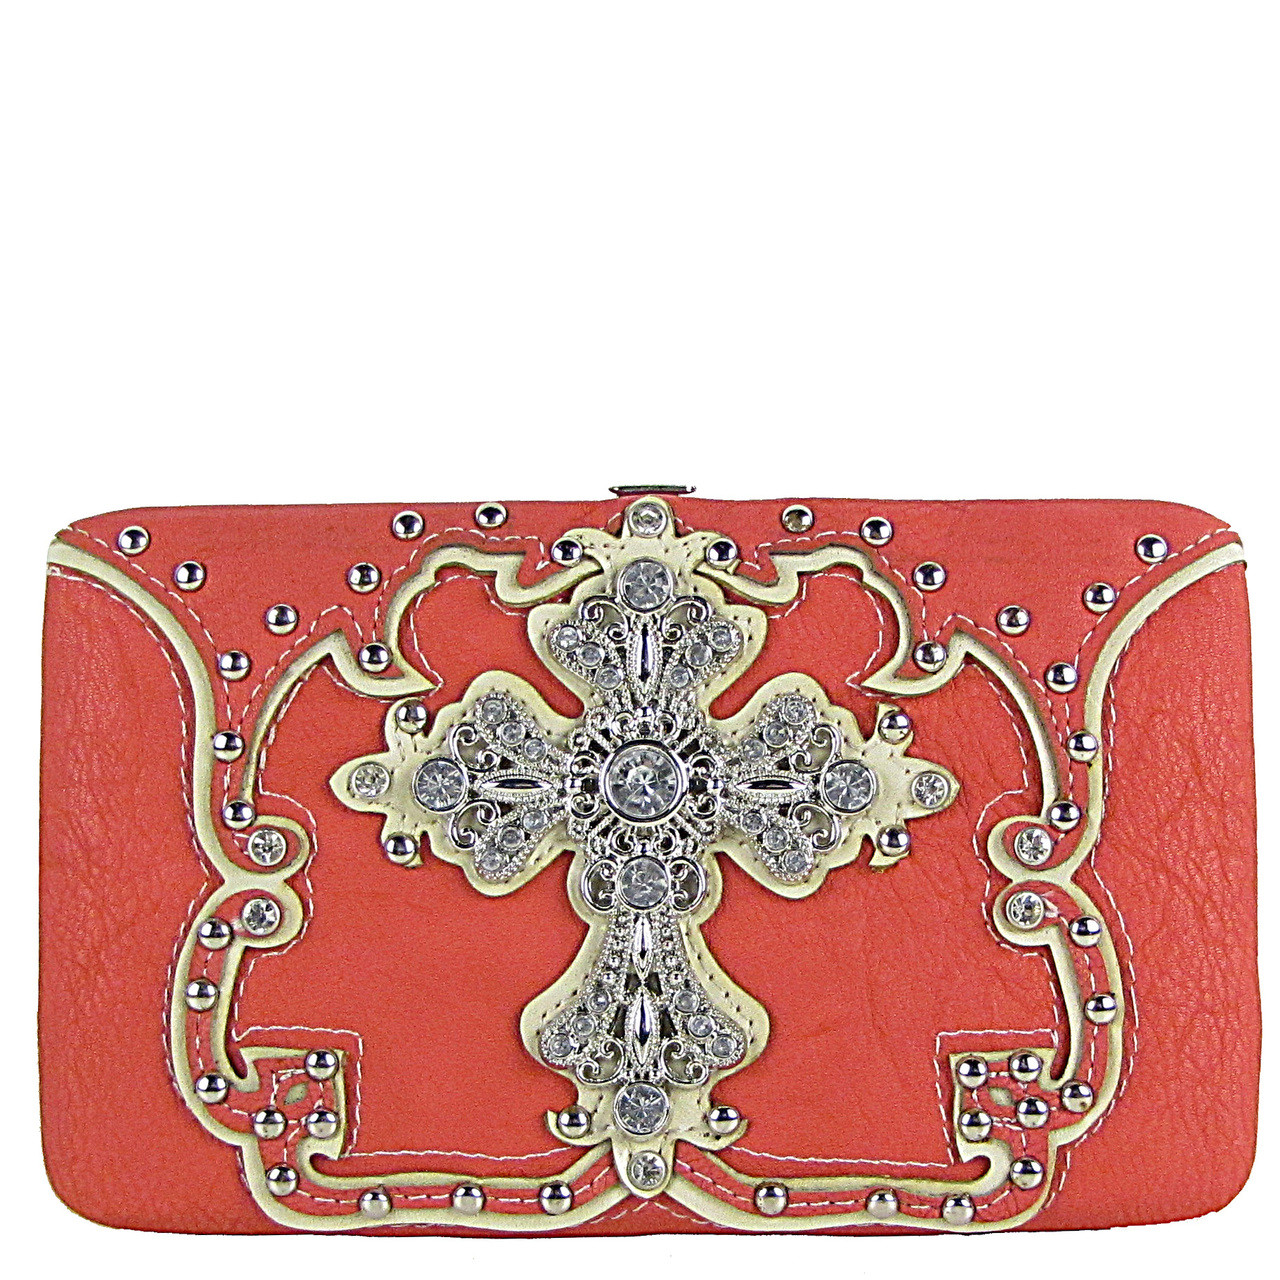 HOT PINK STUDDED RHINESTONE CROSS LOOK FLAT THICK WALLET FW2-04124HPK